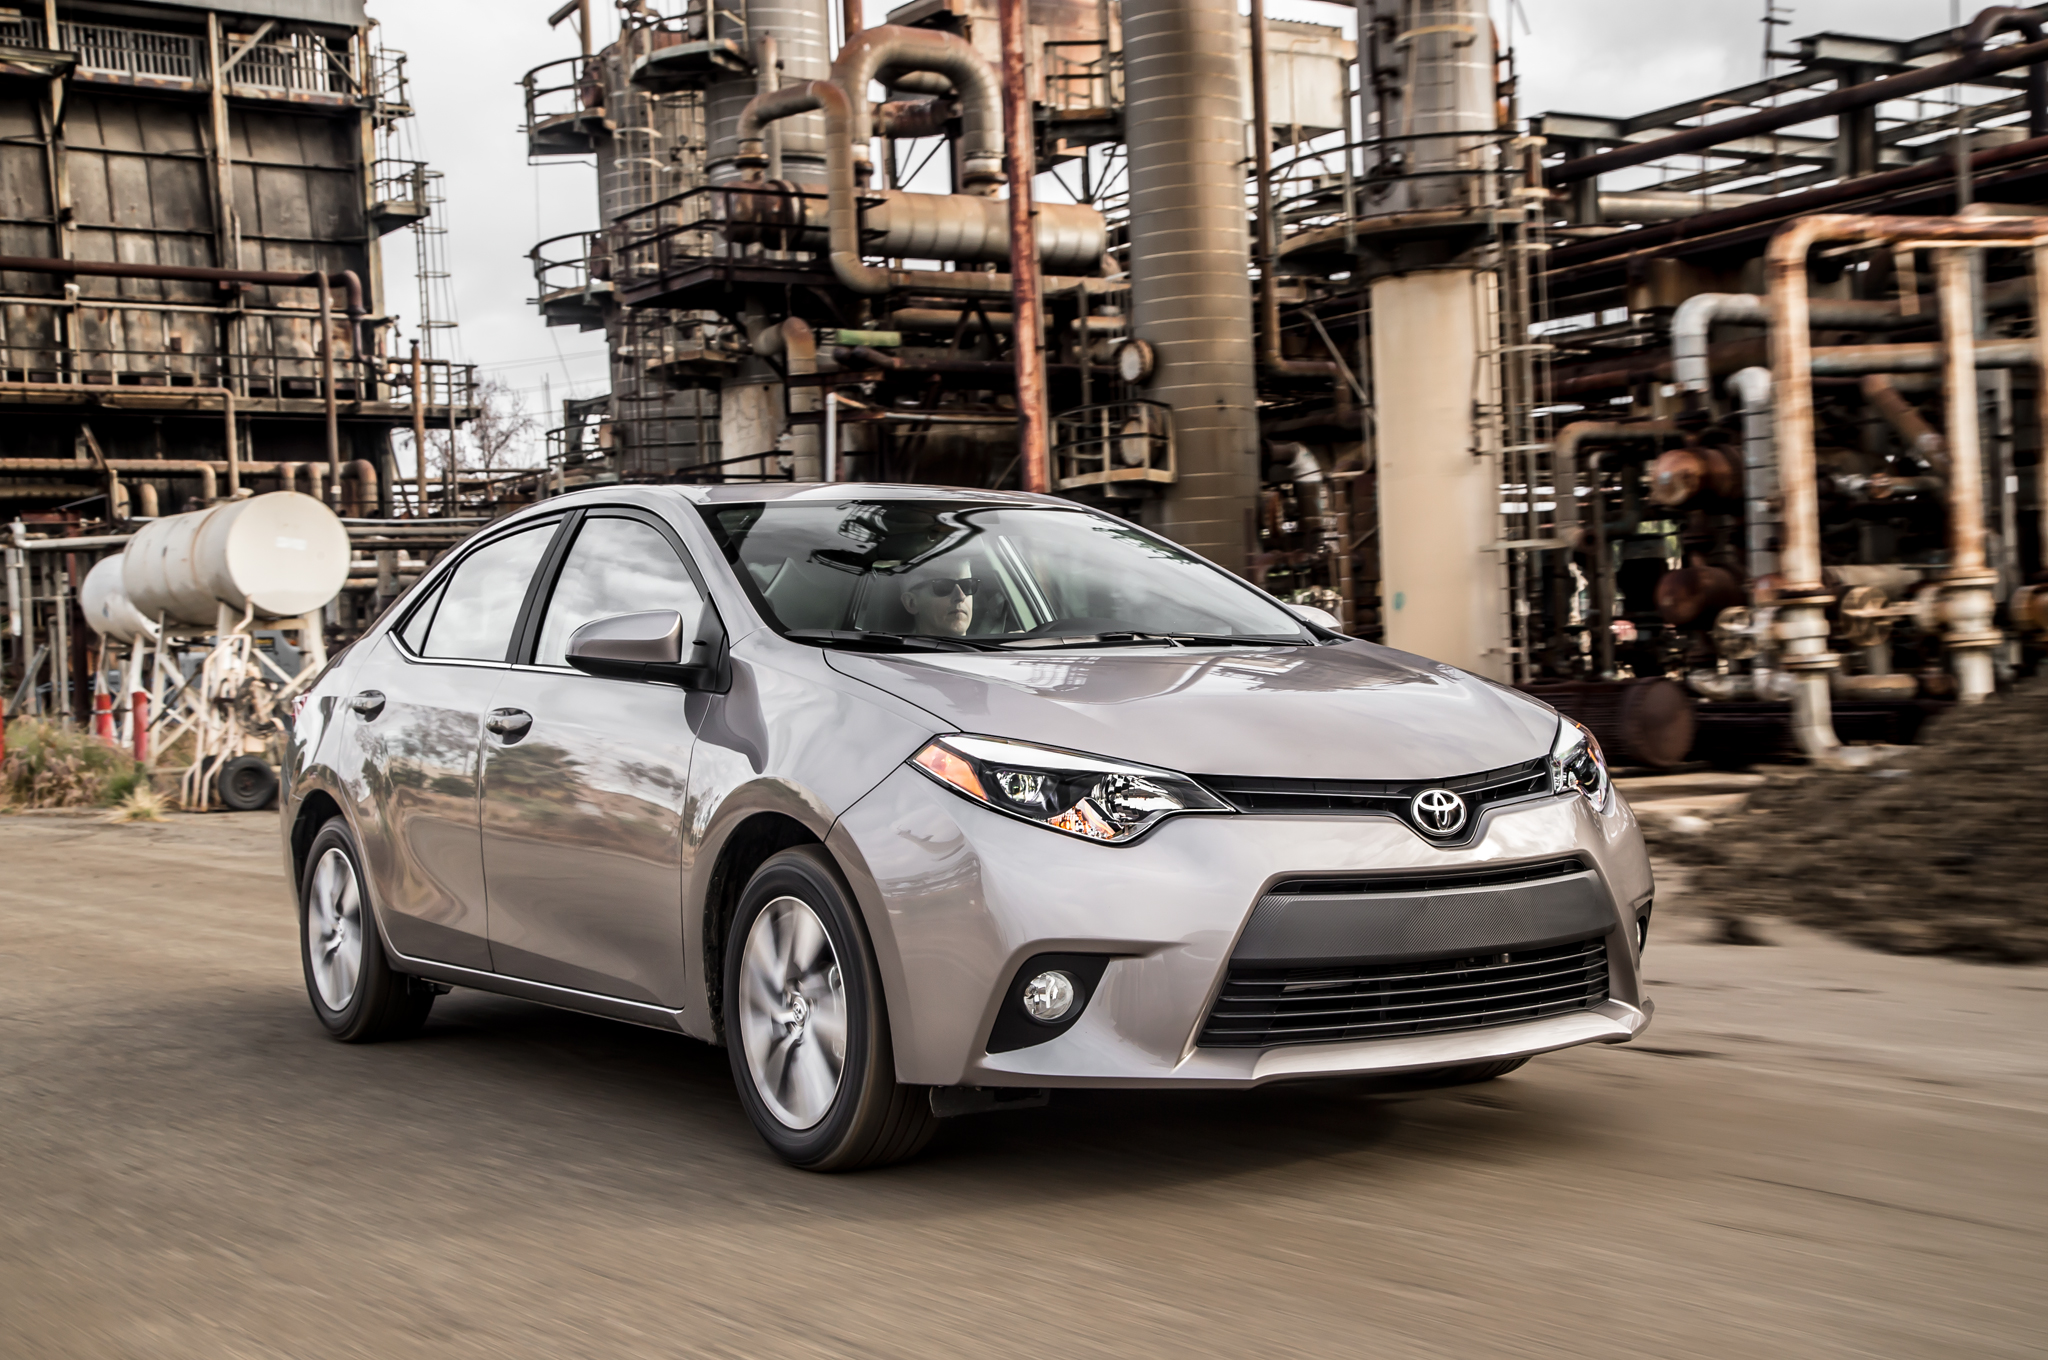 October Compact Sales: Toyota Corolla Regains Lead, Civic in Third